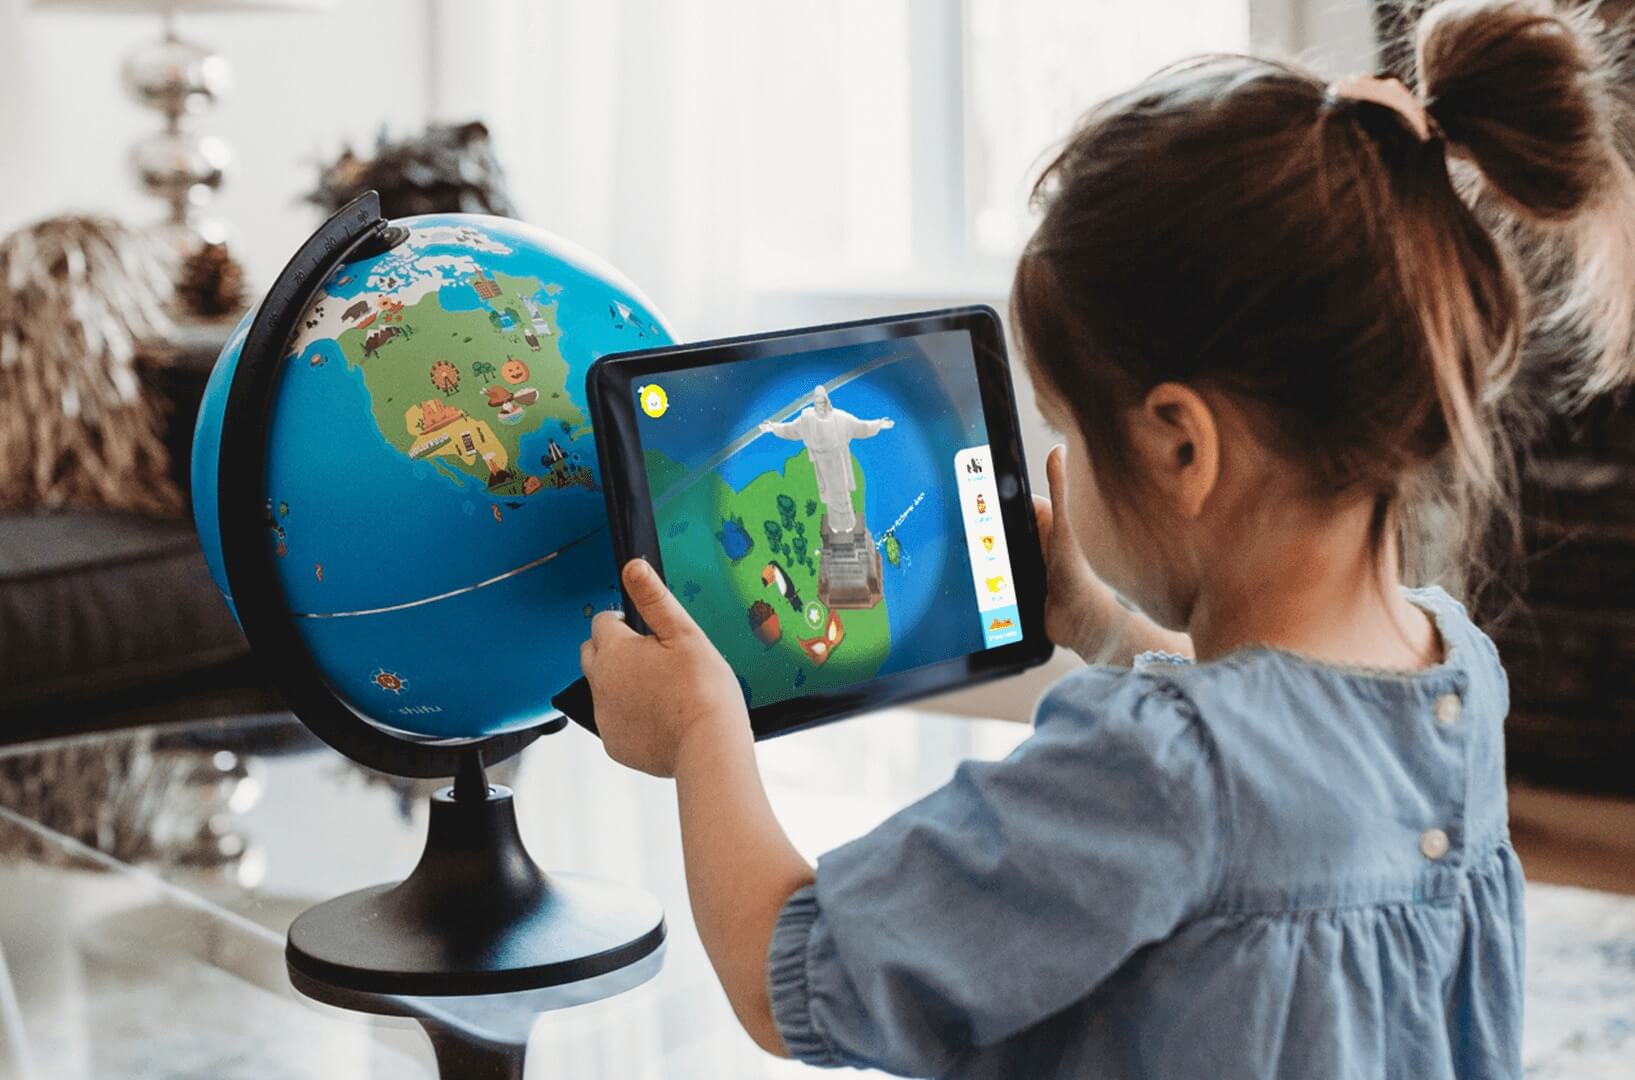 PlayShifu leverages AR to develop immersive and engaging learning experiences for kids